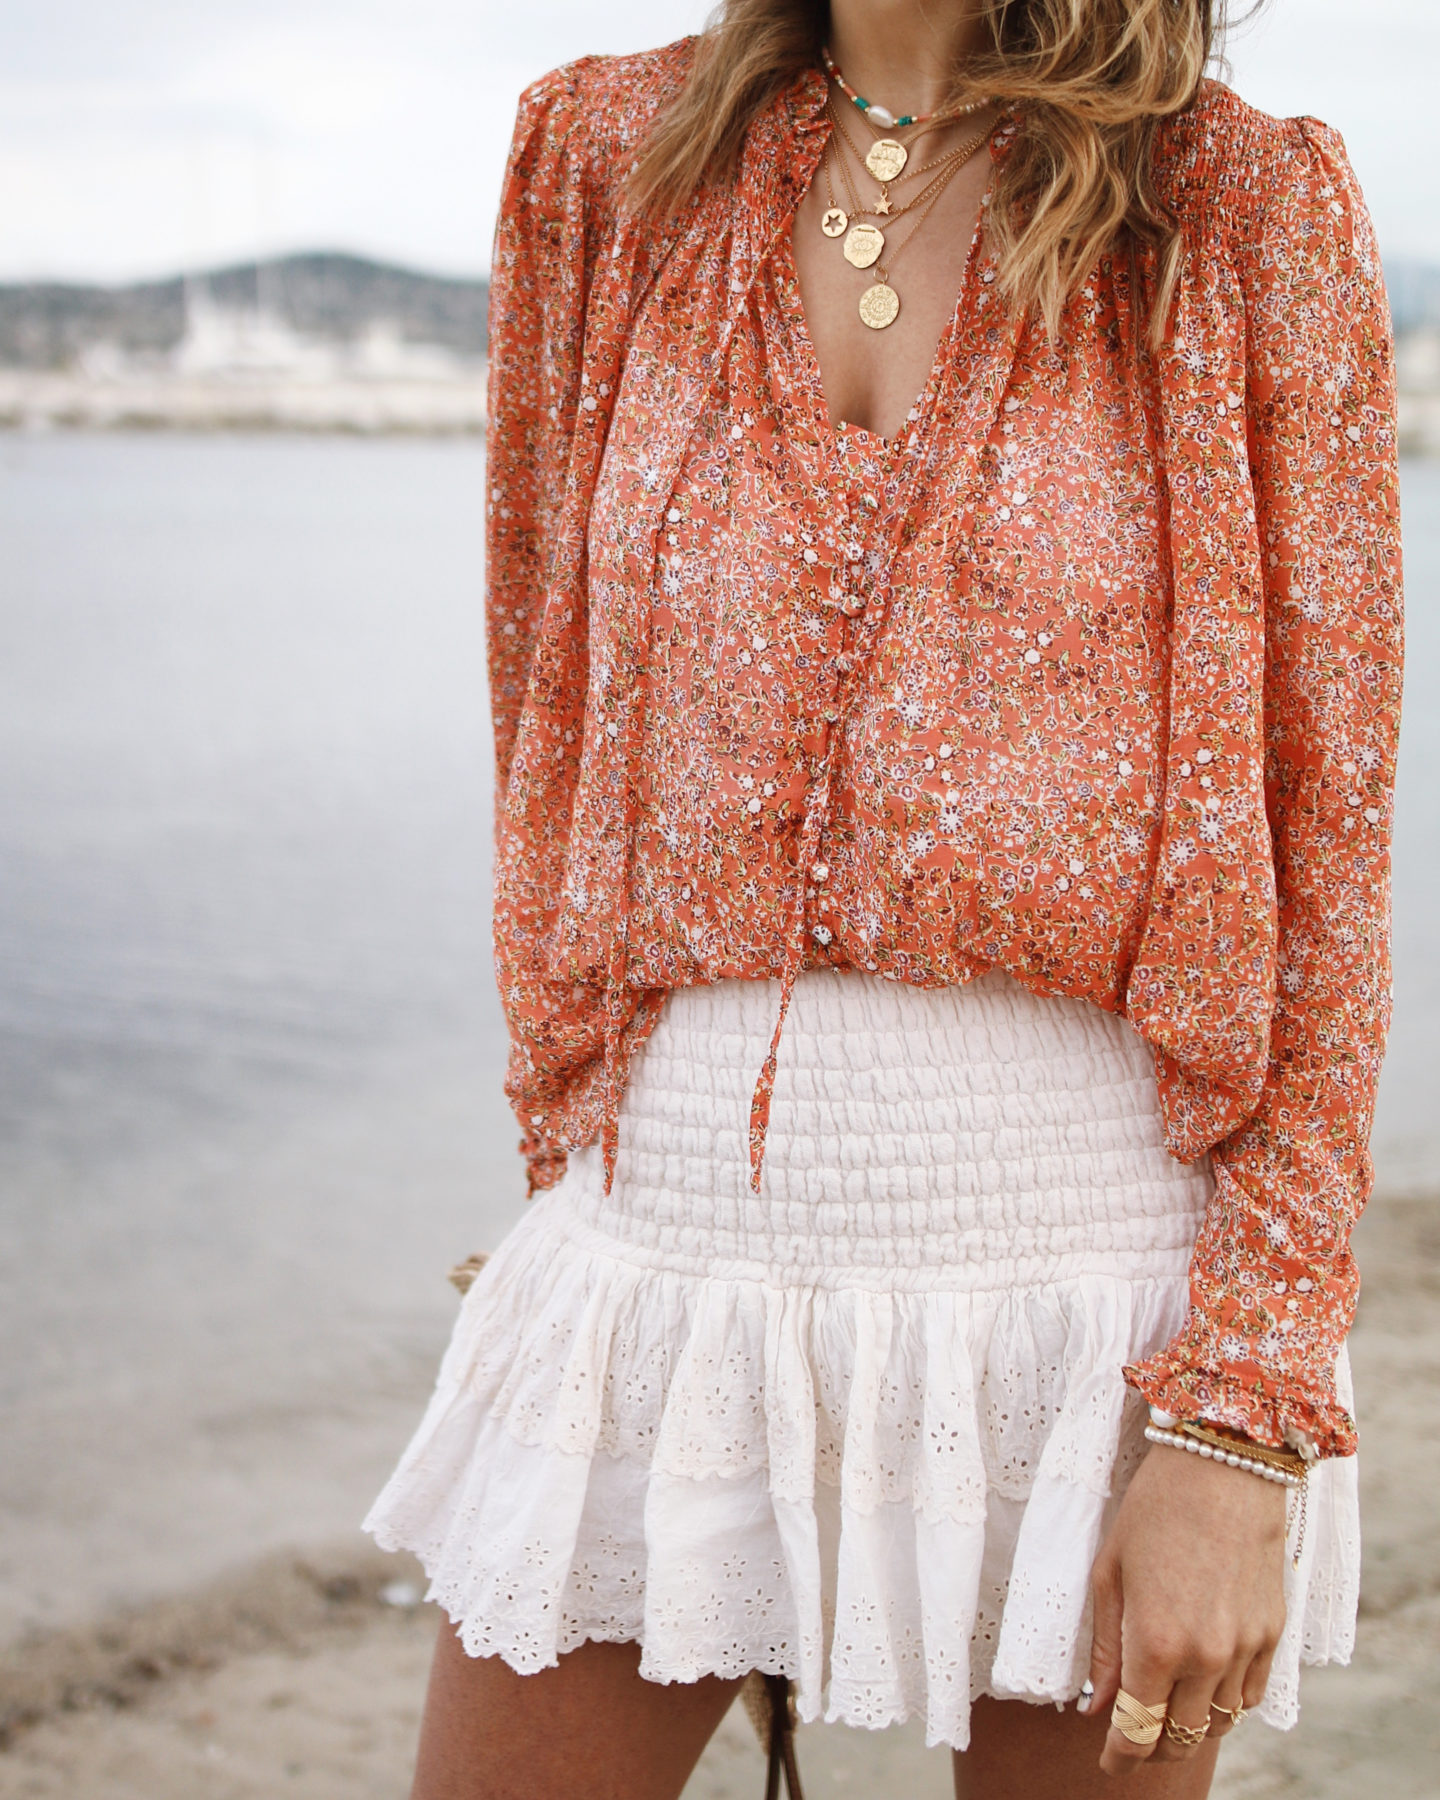 Coral blouse with mini skirt Blouse free people